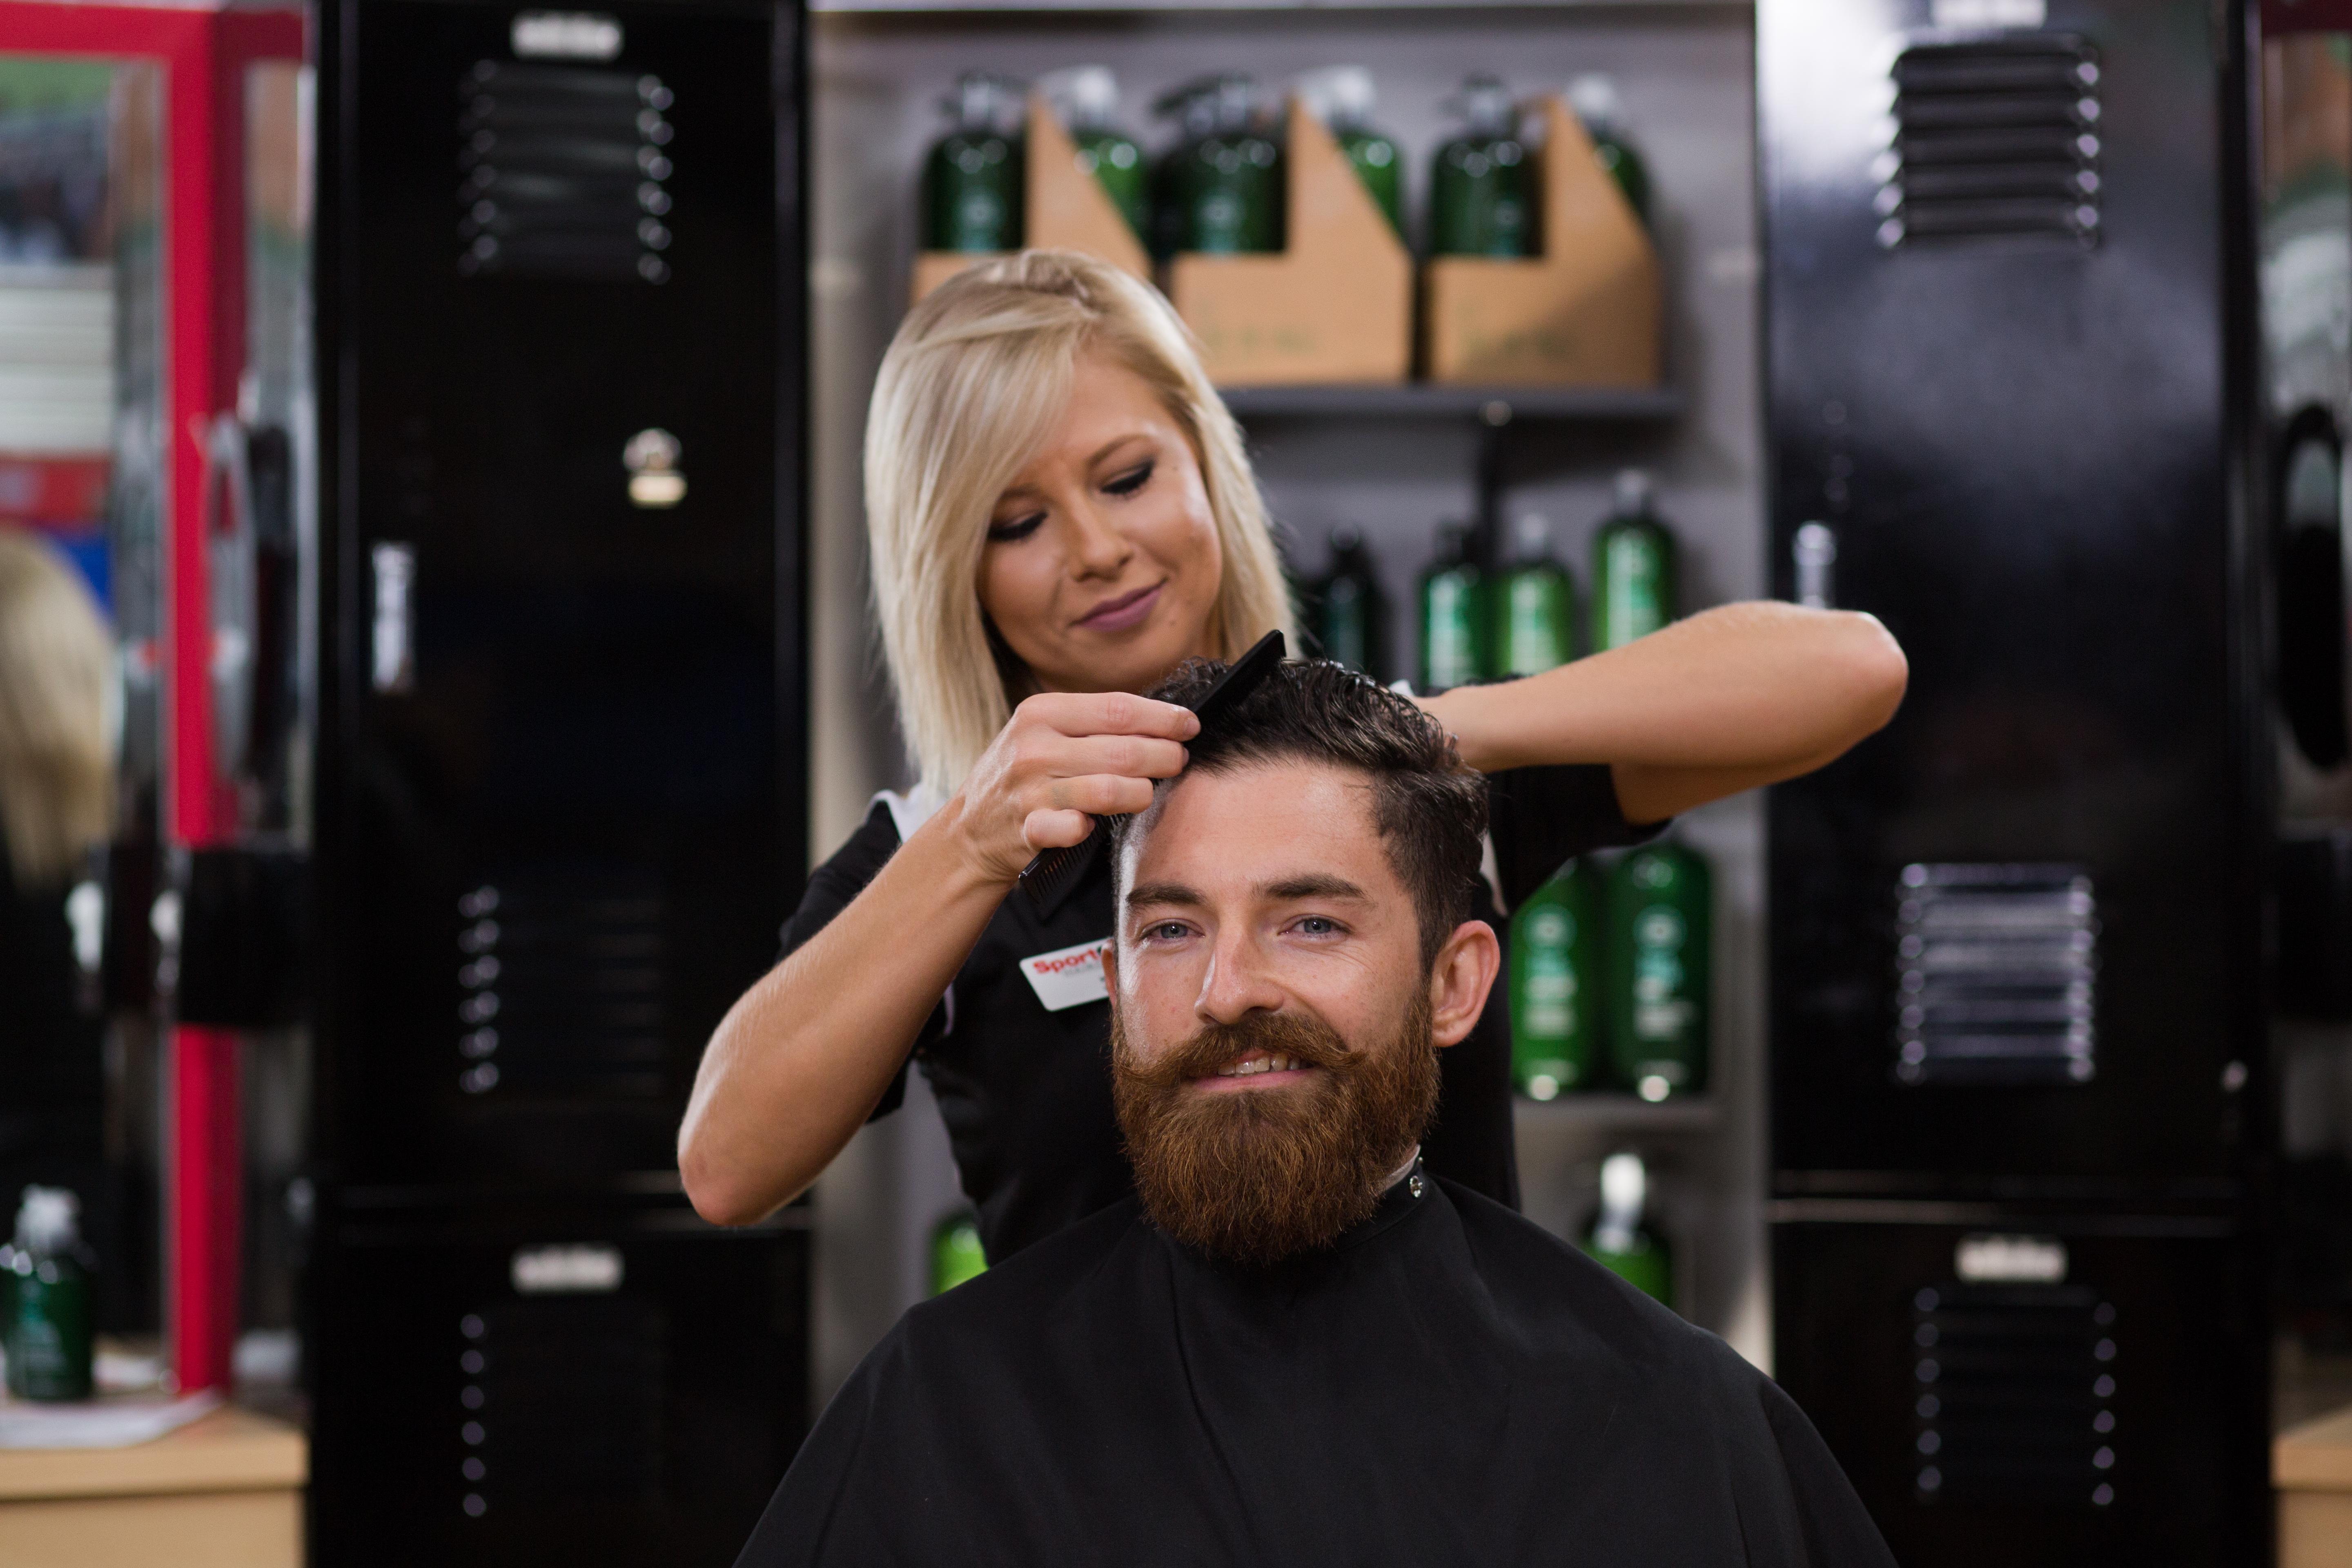 Man with beard getting a Sport Clips haircut